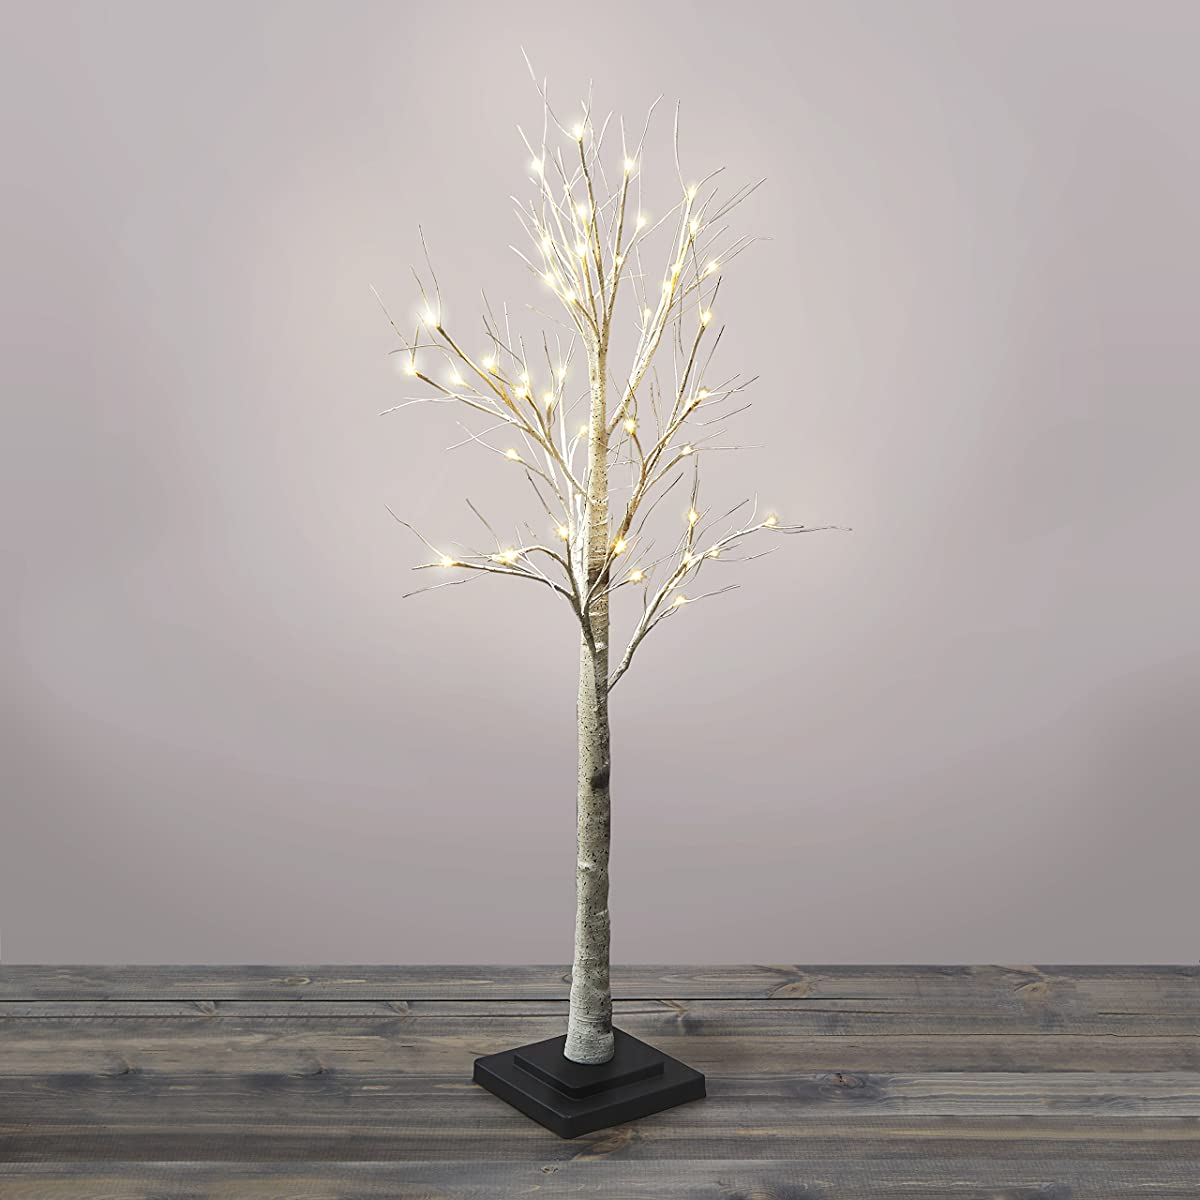 4.5 Ft. Pre-lit Birch Tree, 48 Warm White LEDs, Indoor/Outdoor Use, Plugin, Timer Included, UL Listed